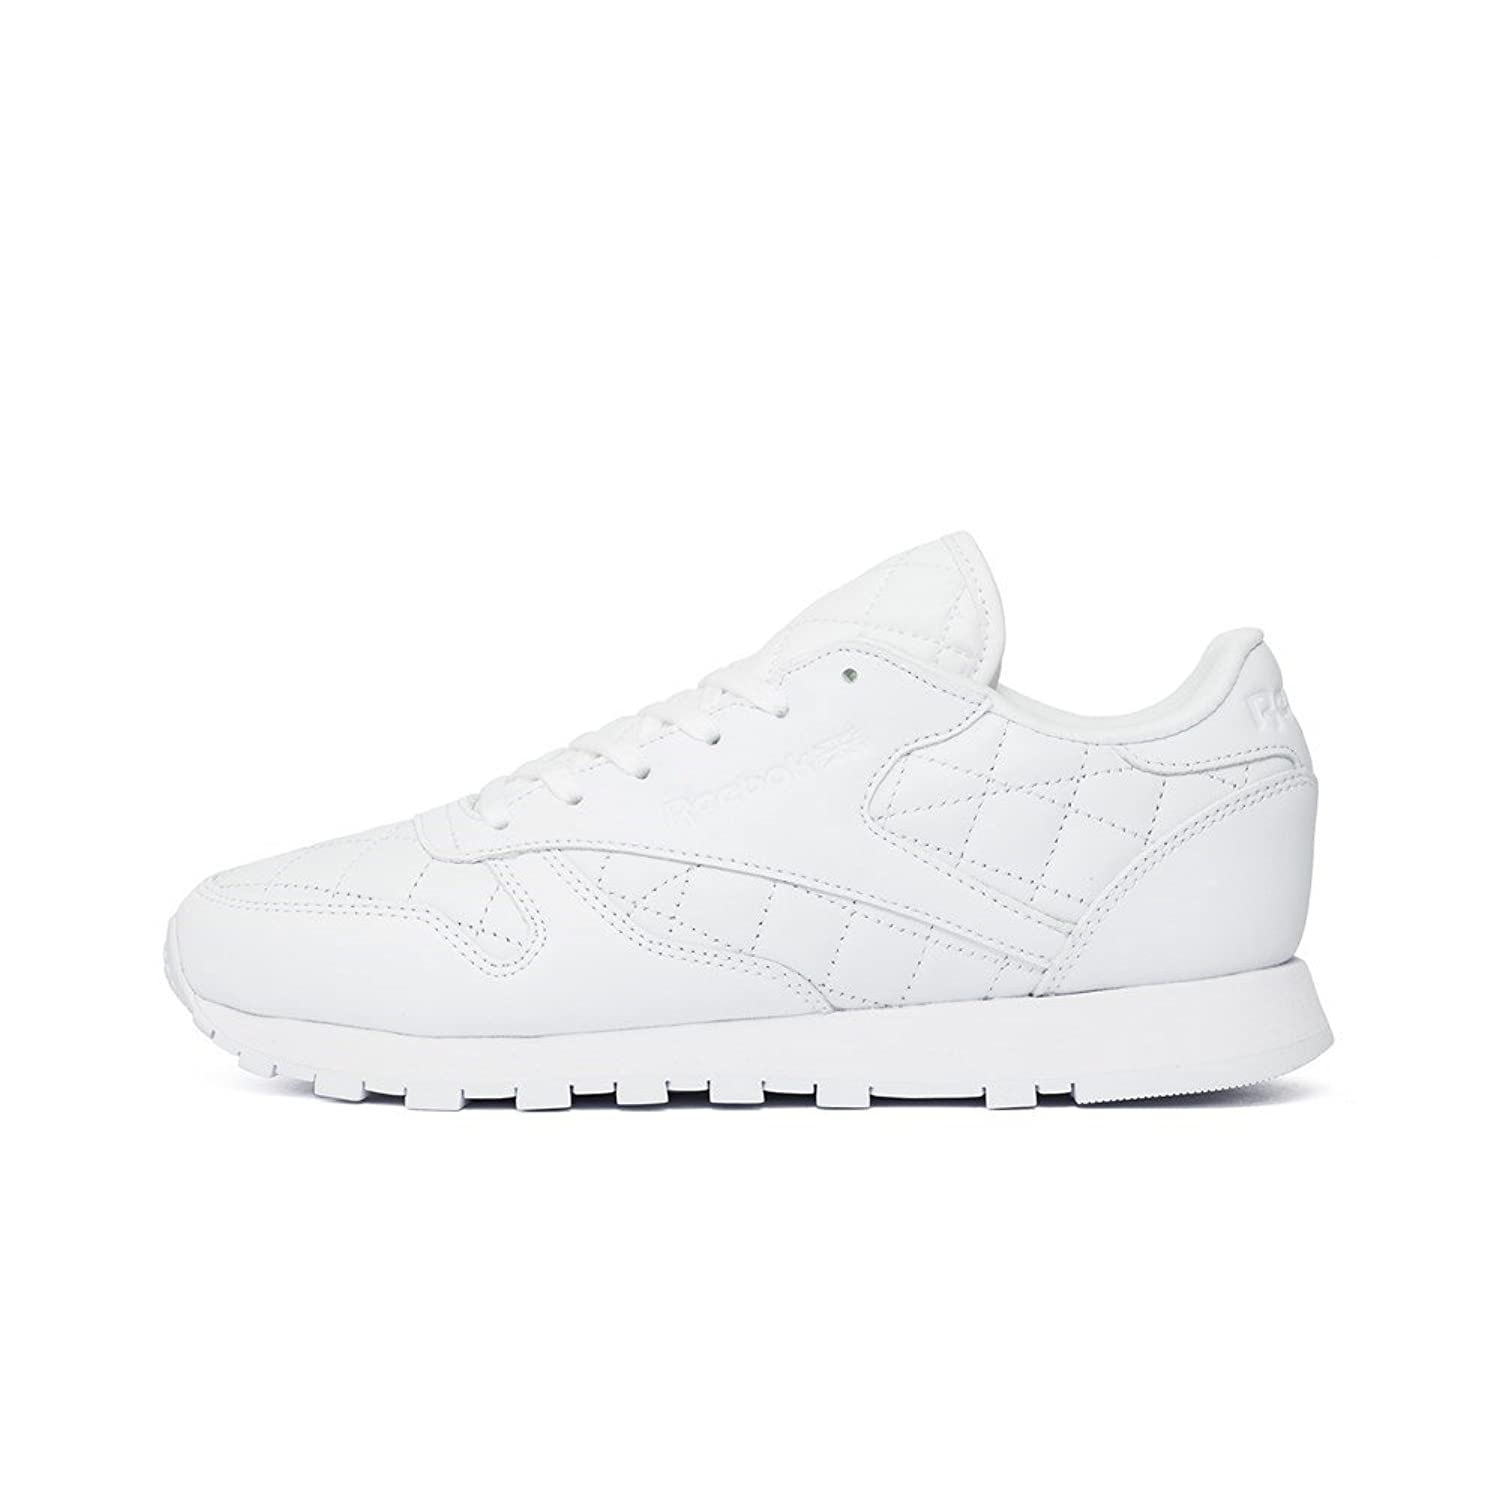 Reebok Donna Scarpe / Sneaker CL Leather Quilted